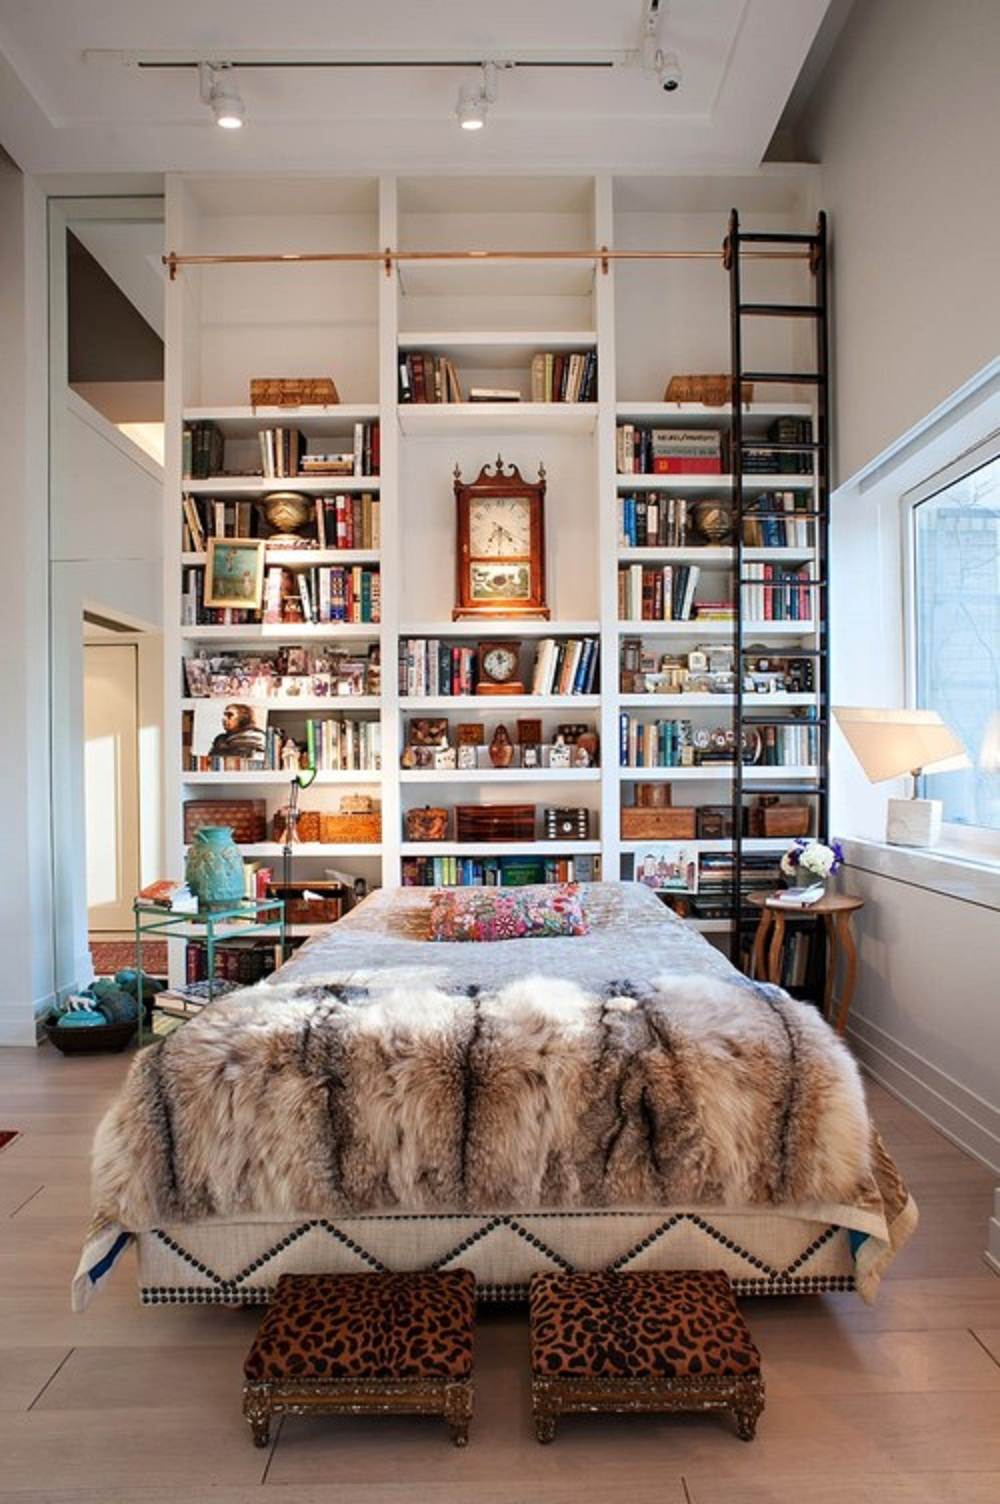 The many uses for the library ladder in the home. Image via Home Design Ideas